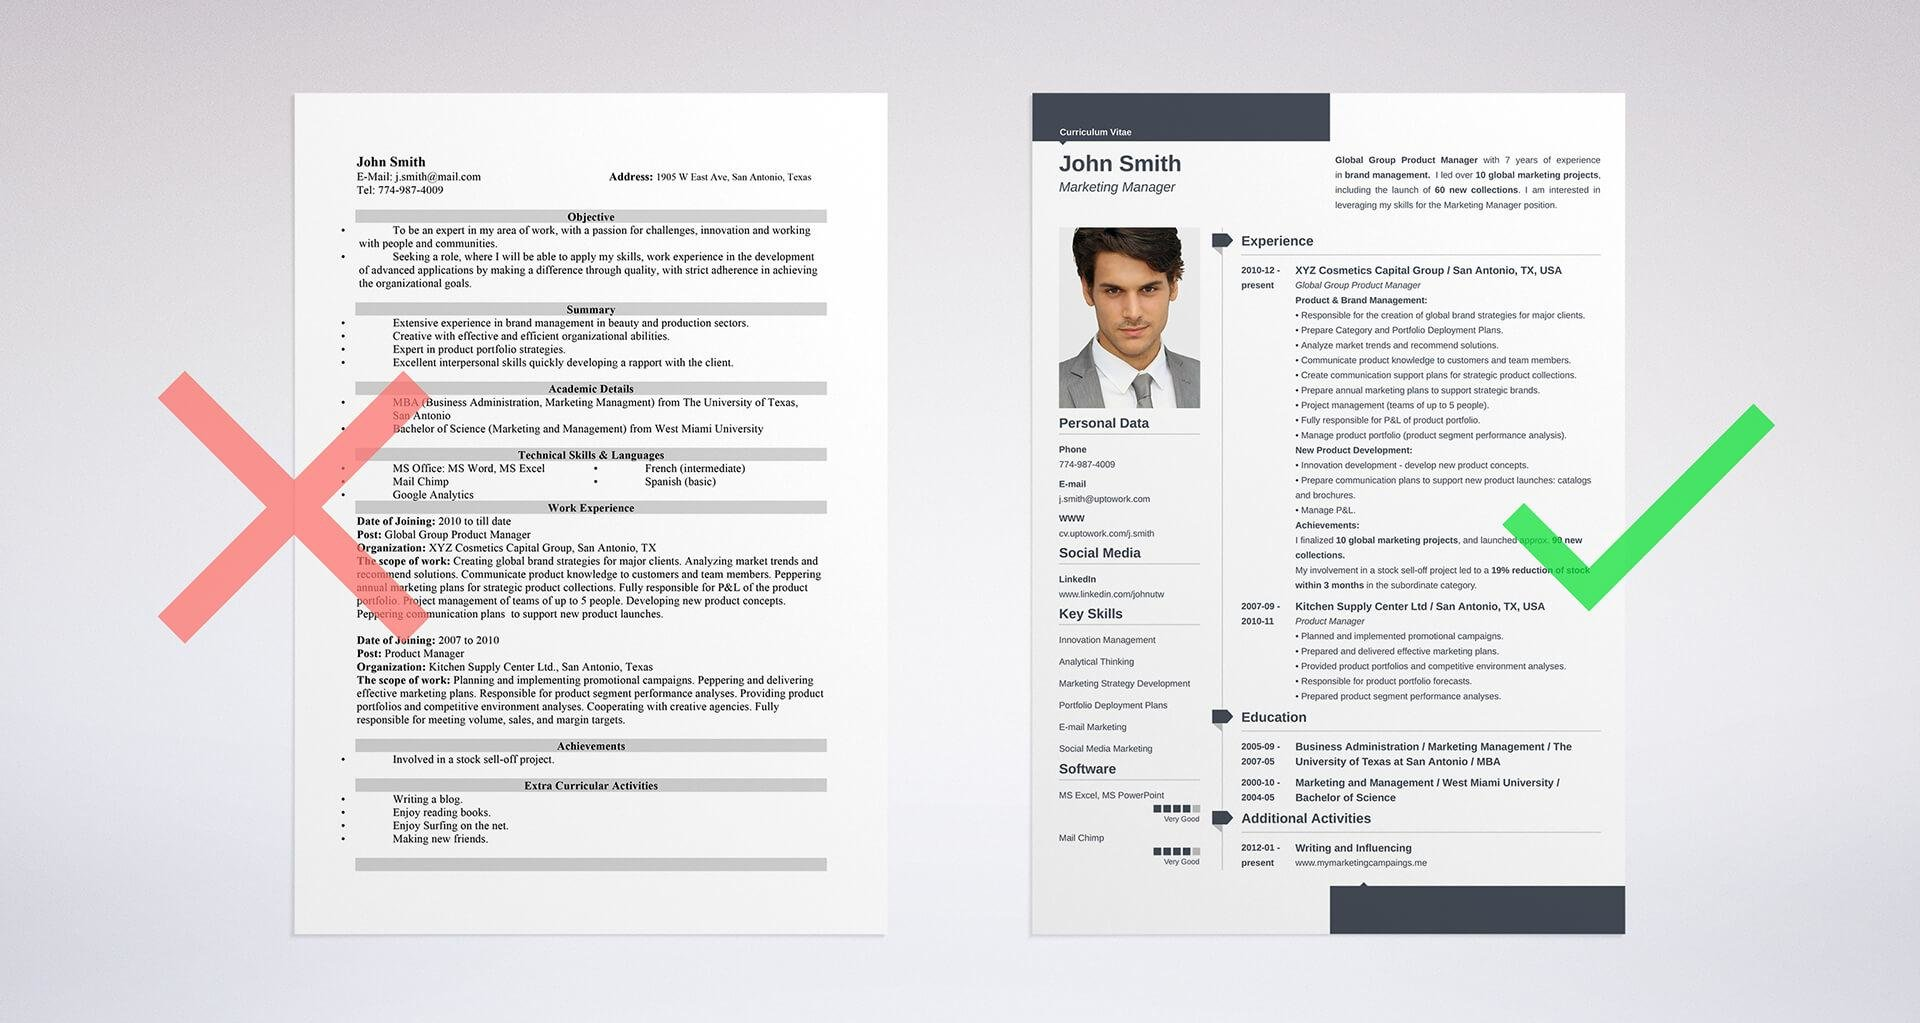 CV Vs Resume   What Do You Use When You Want To Work Abroad? Regarding Resume Or Curriculum Vitae